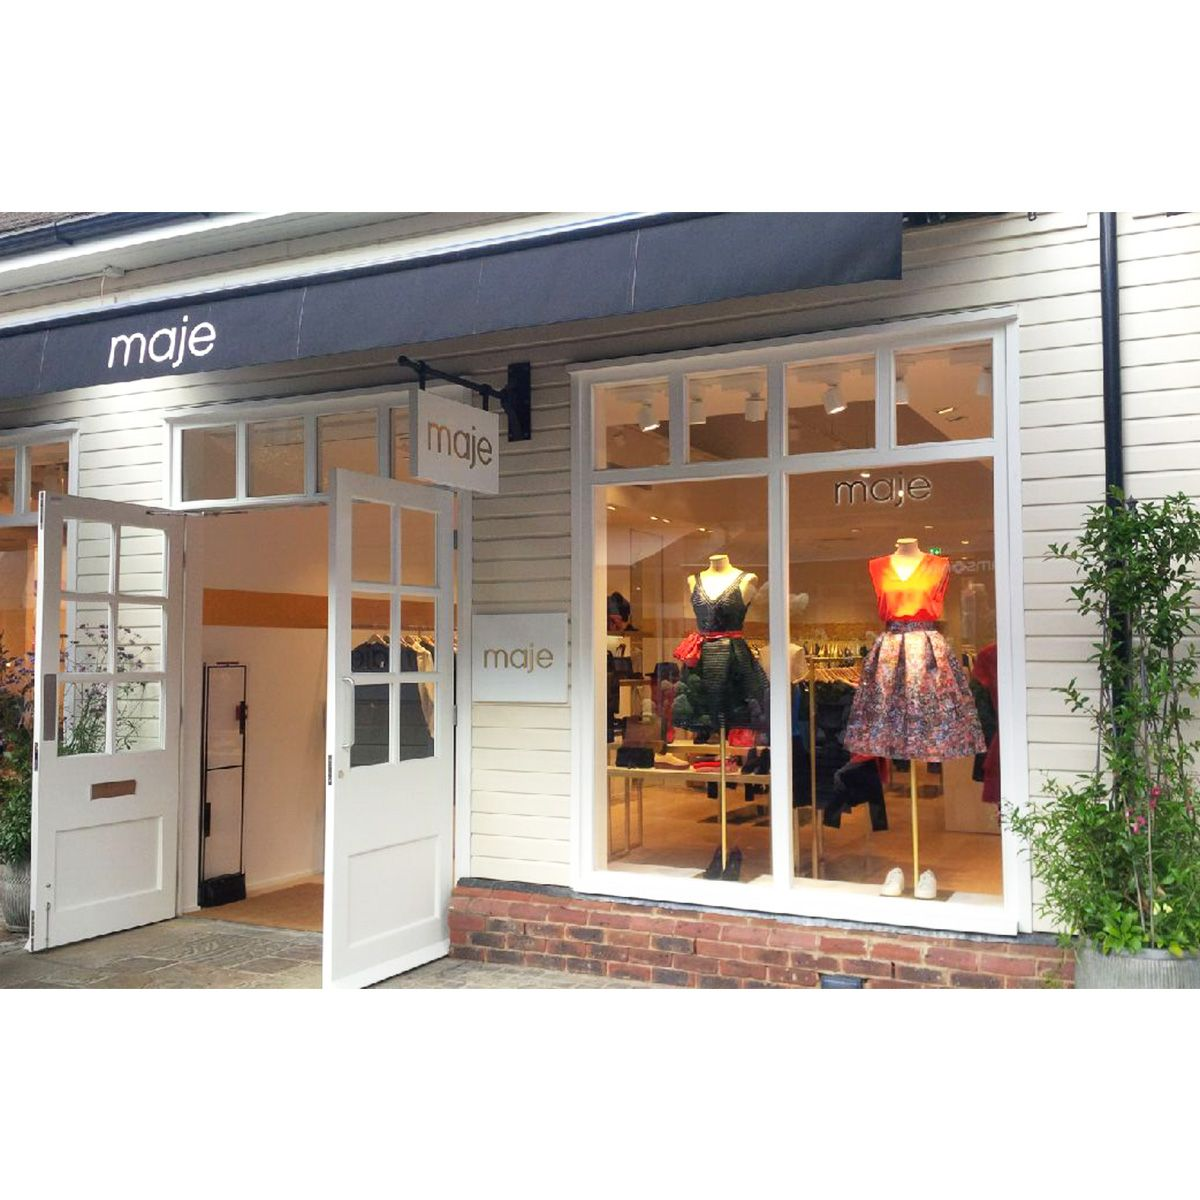 collection outlet store maje presents its new outlet store in bicester come